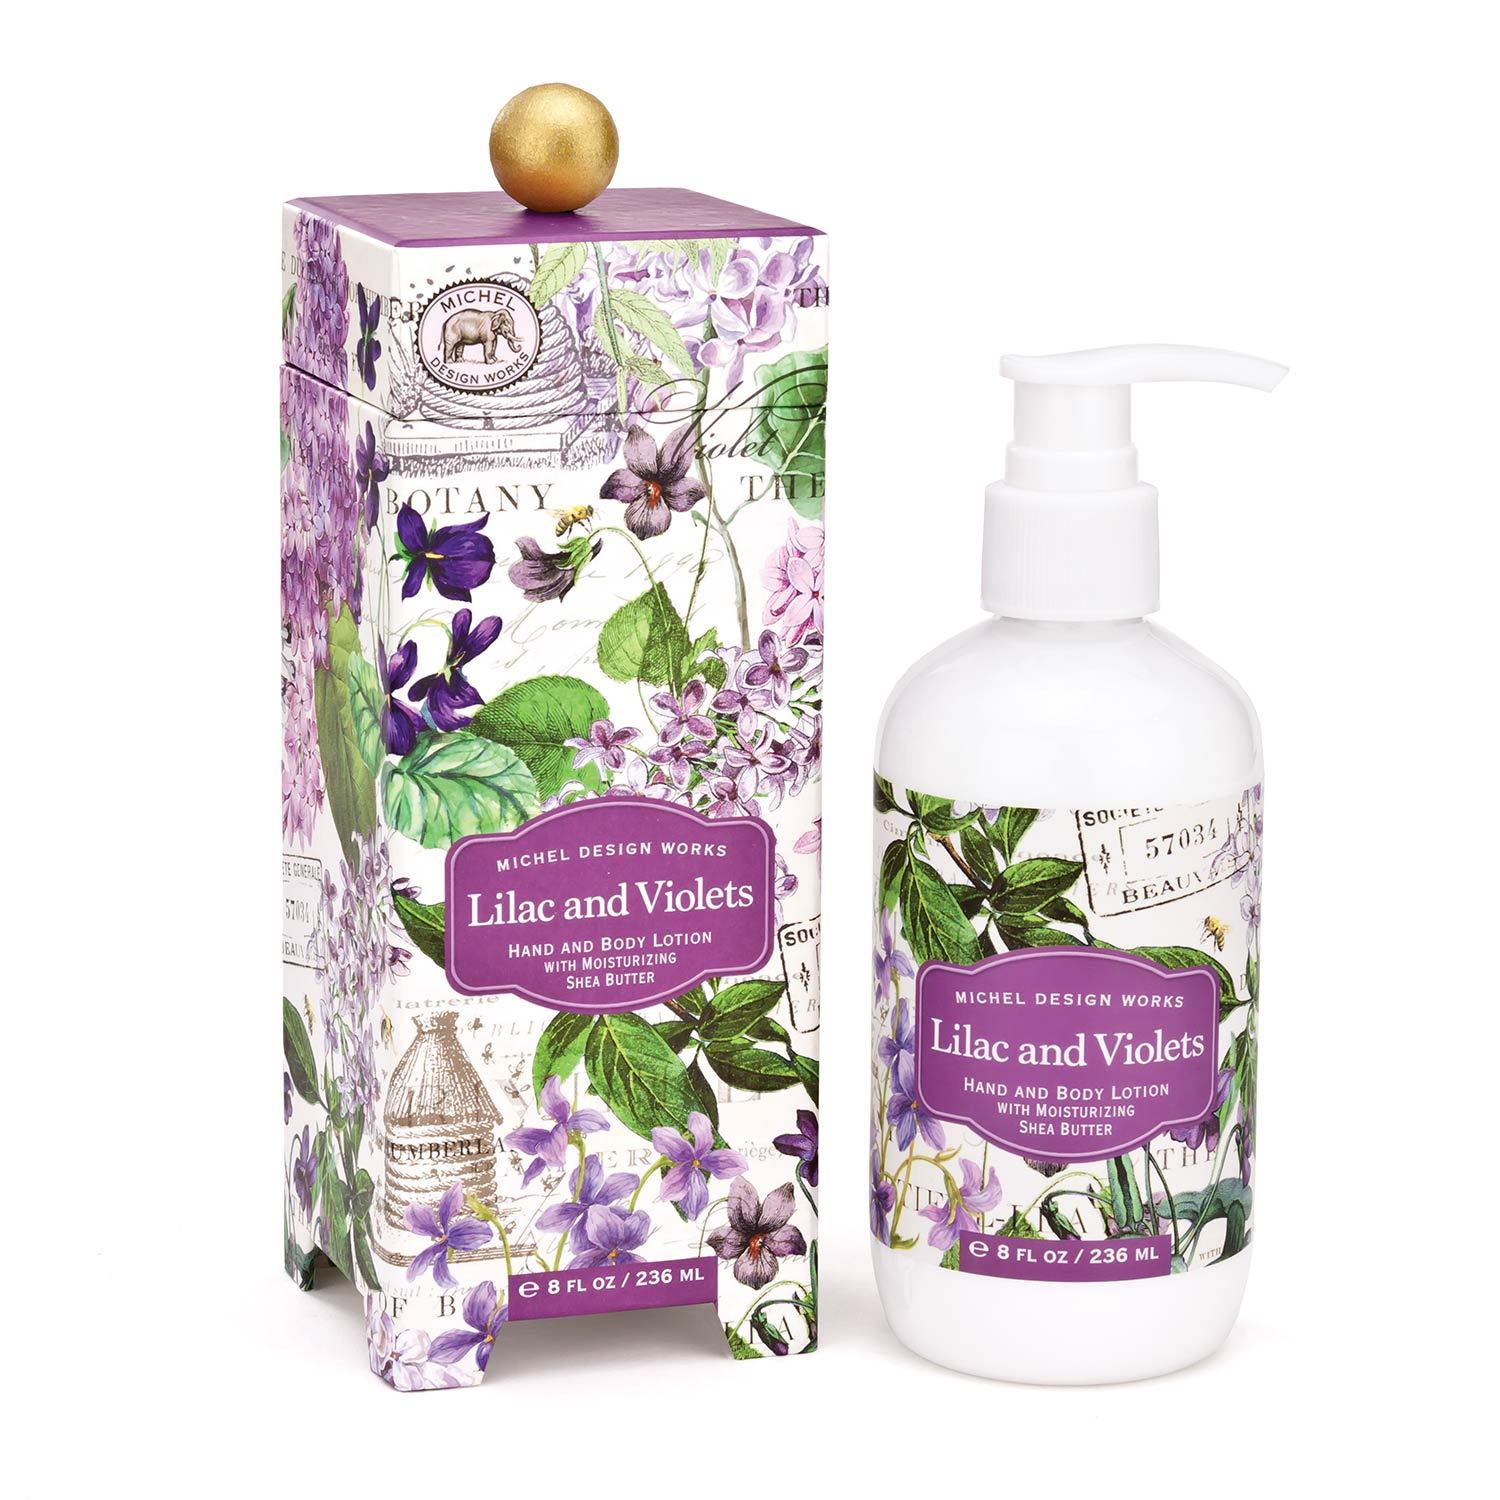 Lilac and Violets Lotion